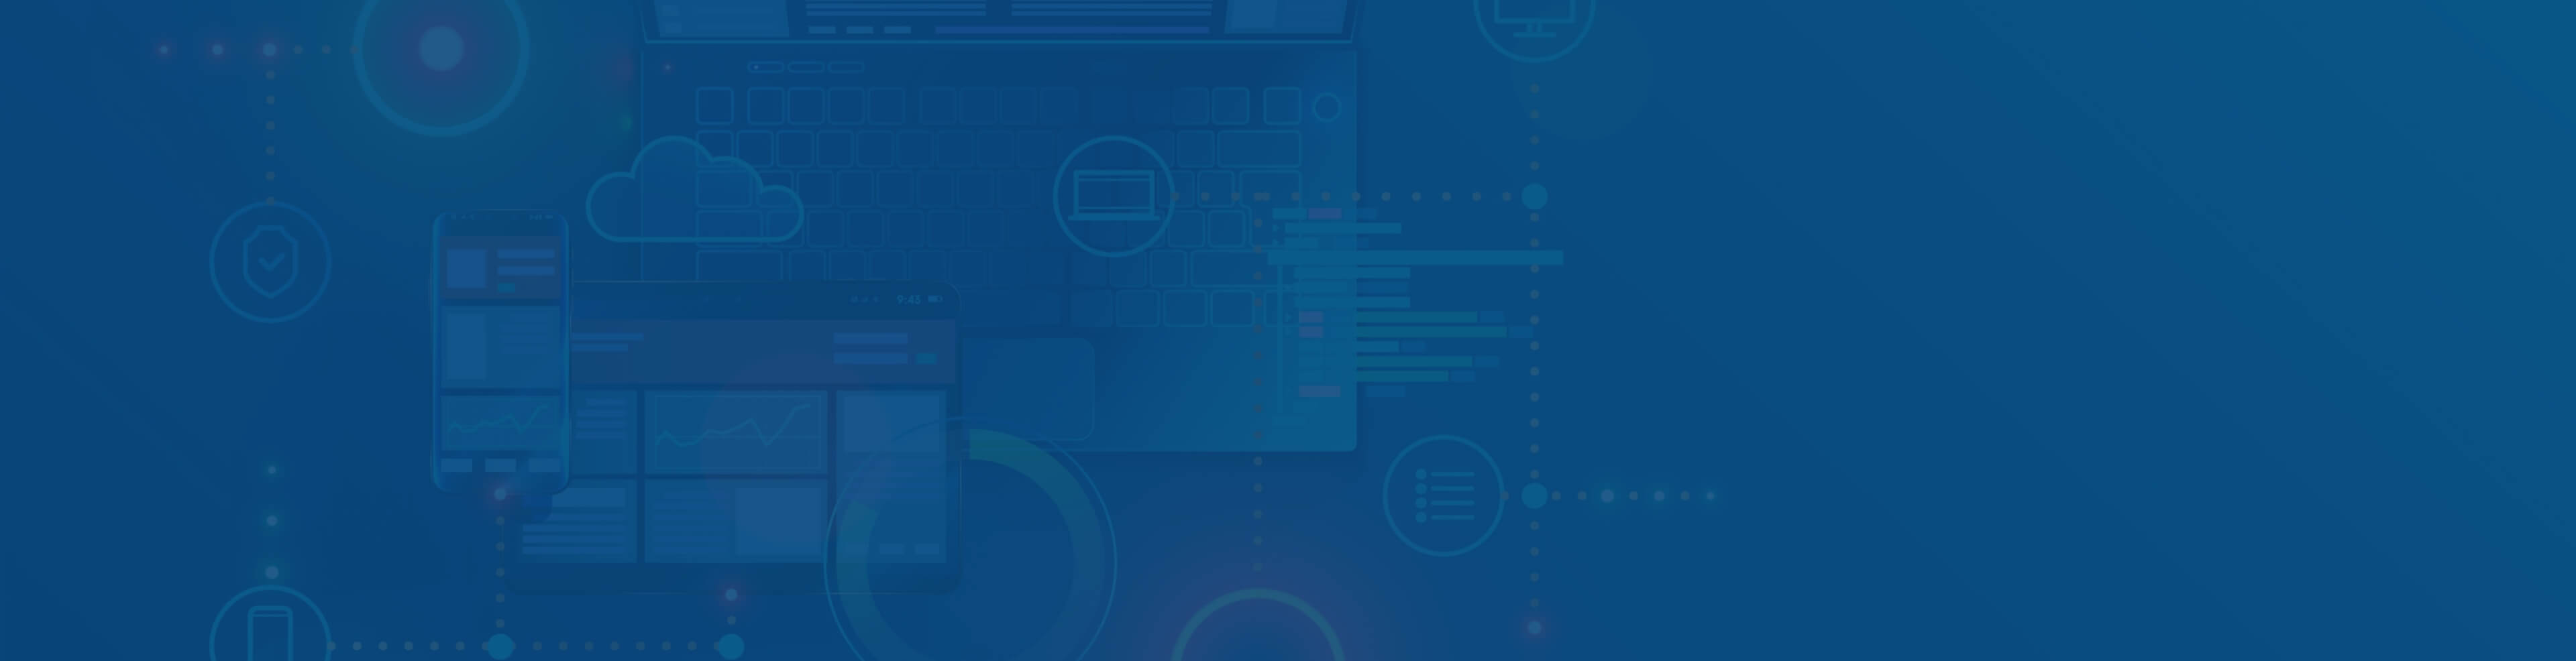 Start Your Project With Leading Python Development Company